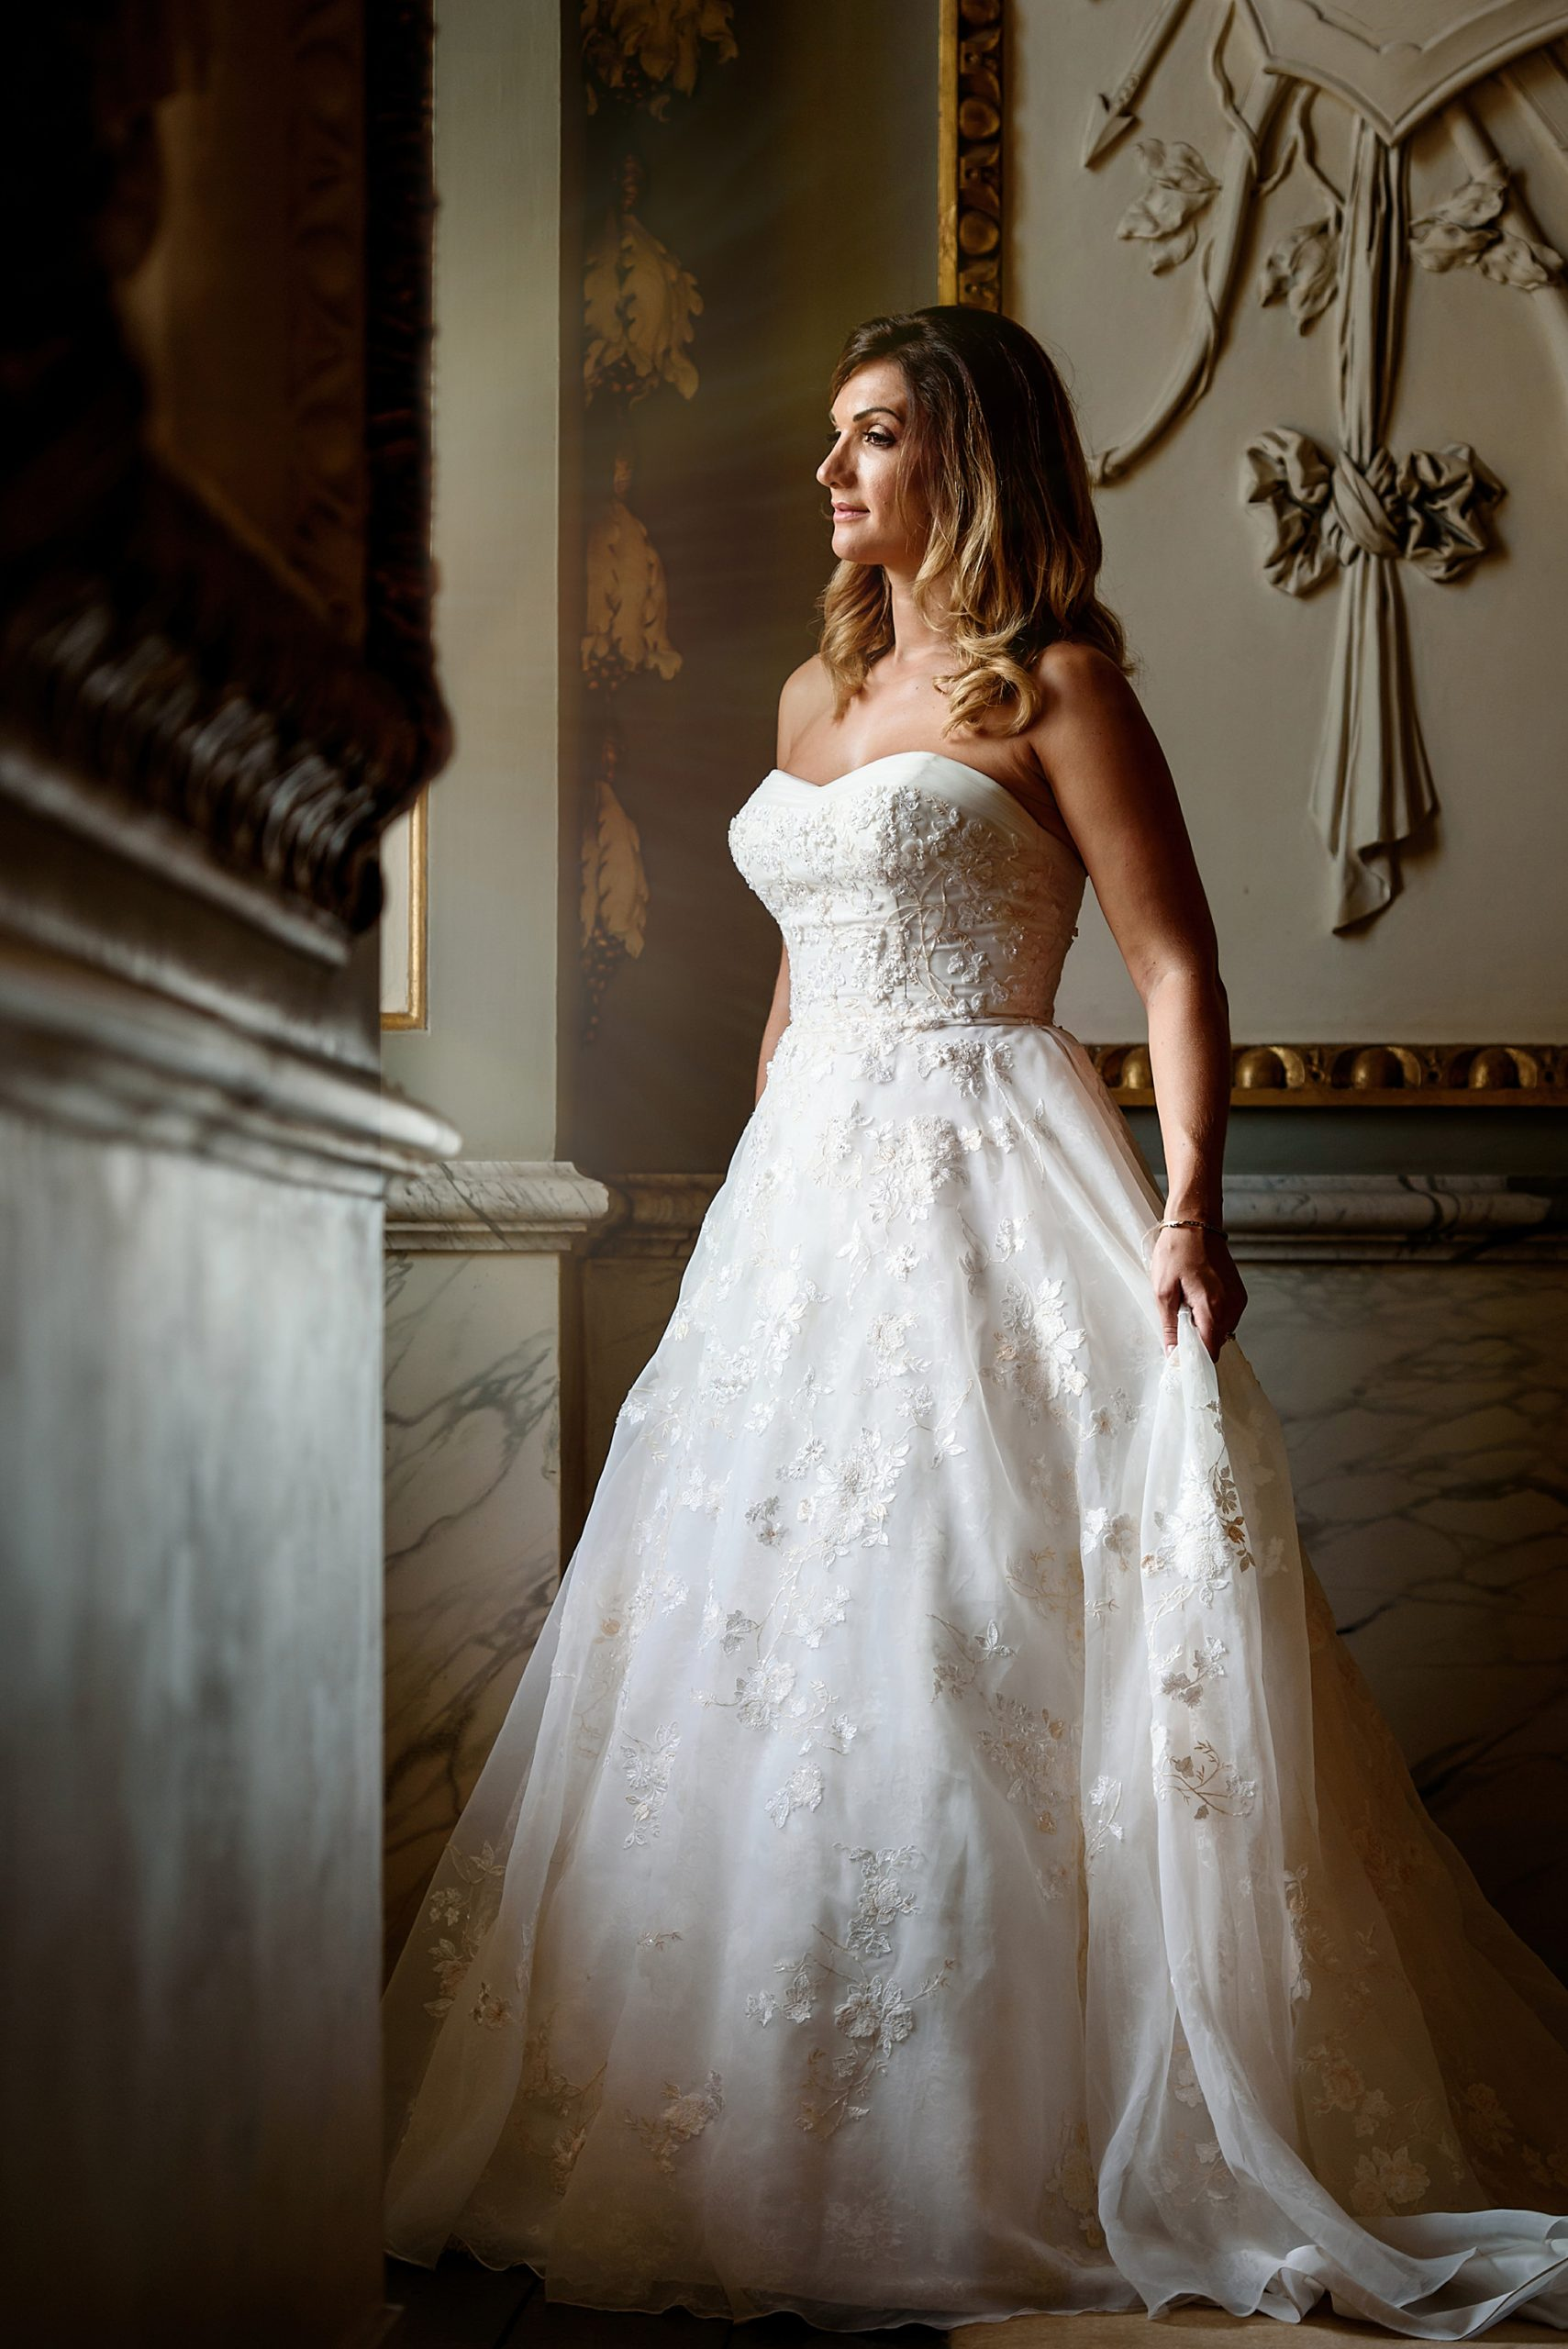 bridal portrait by the window in ornate room